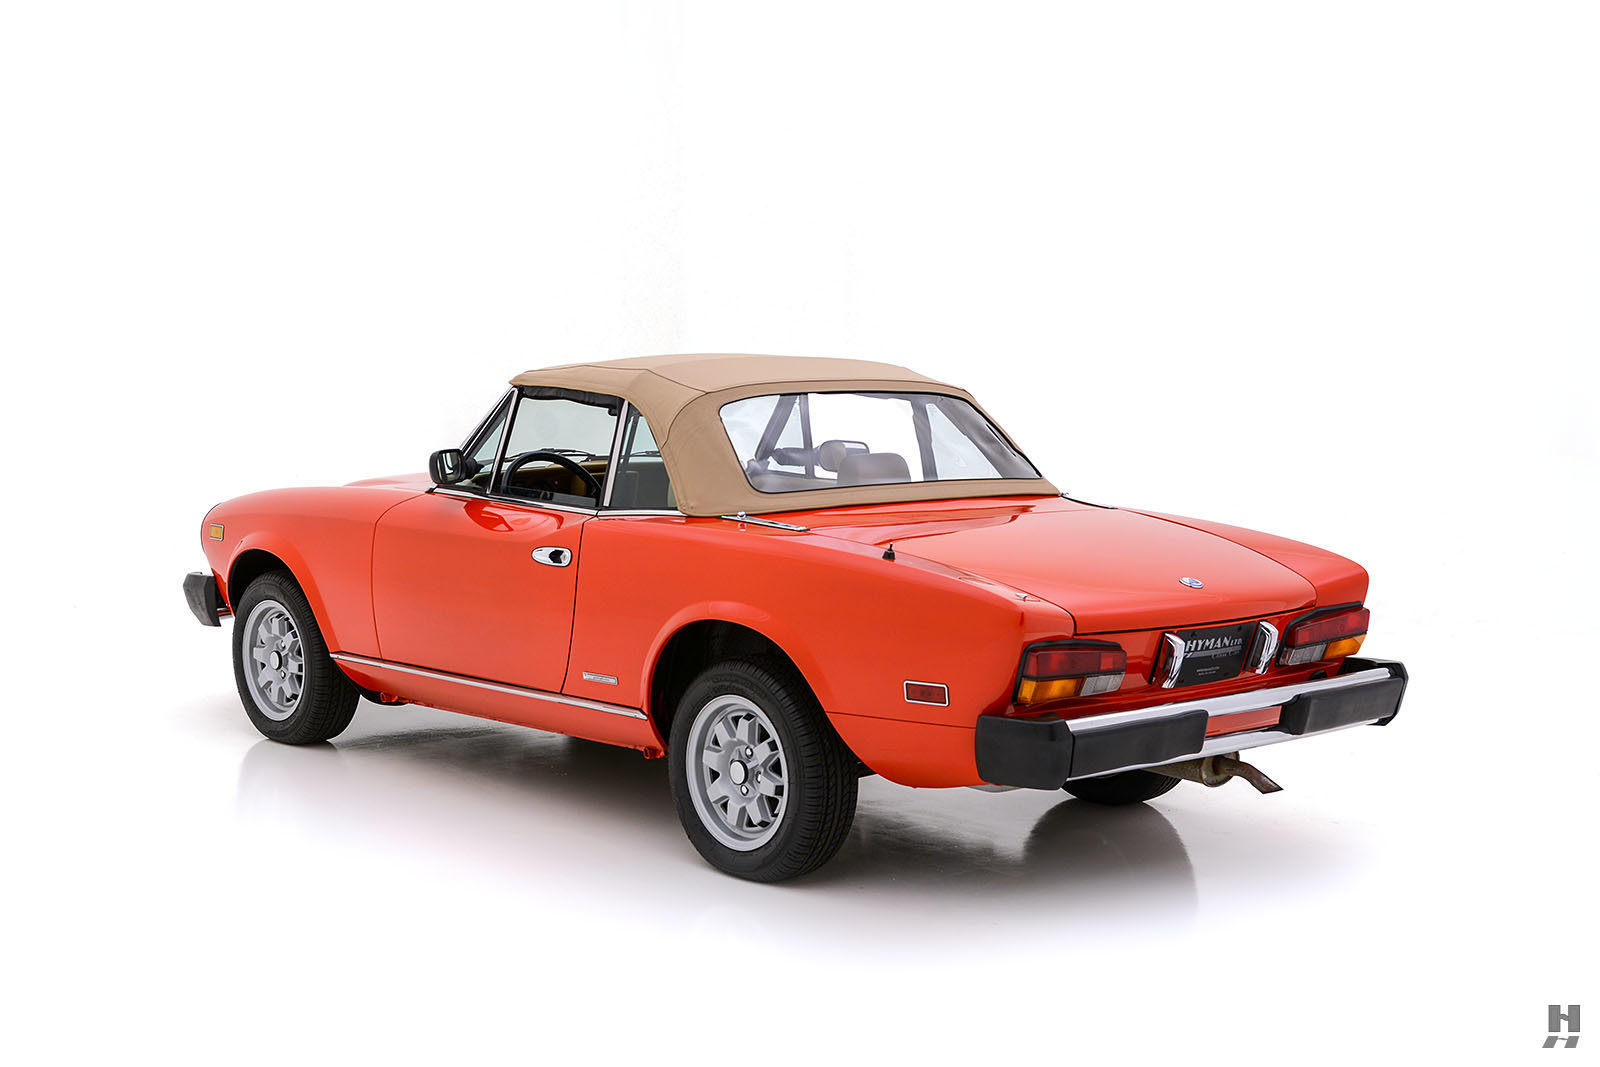 1984 PININFARINA SPIDER AZZURRA CABRIOLET For Sale (picture 6 of 6)